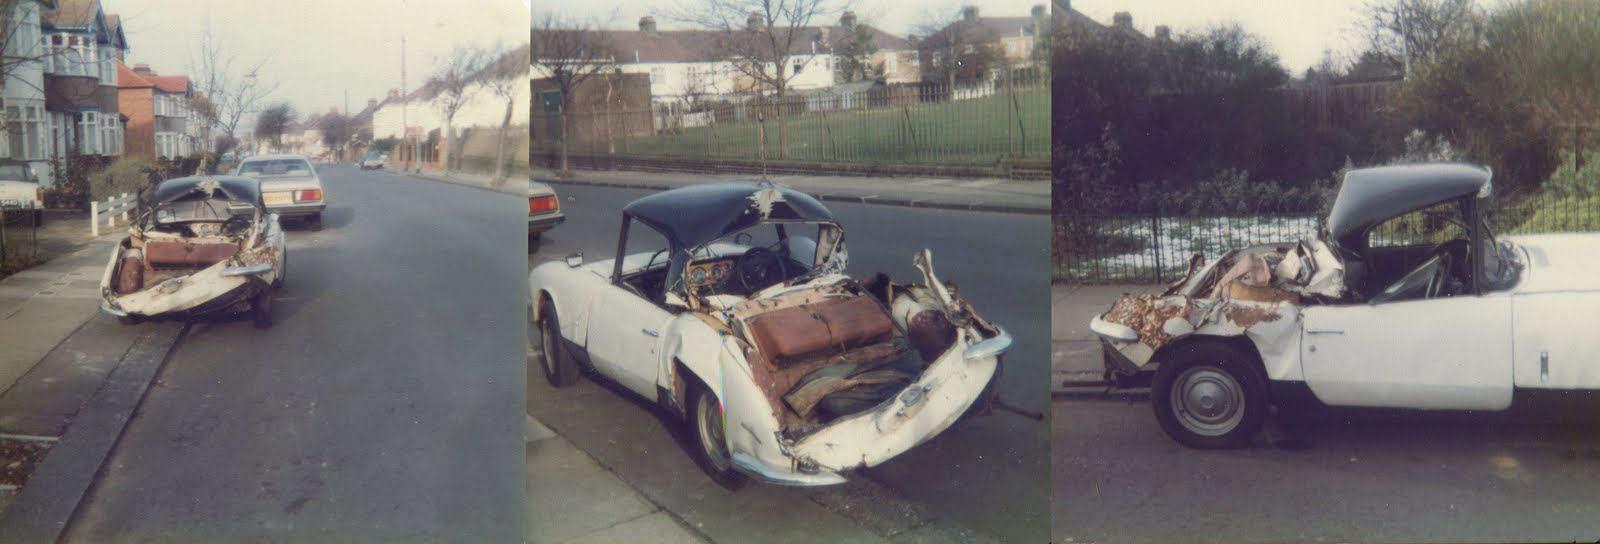 SHARPEYE STYLE: The Car Crash 1980